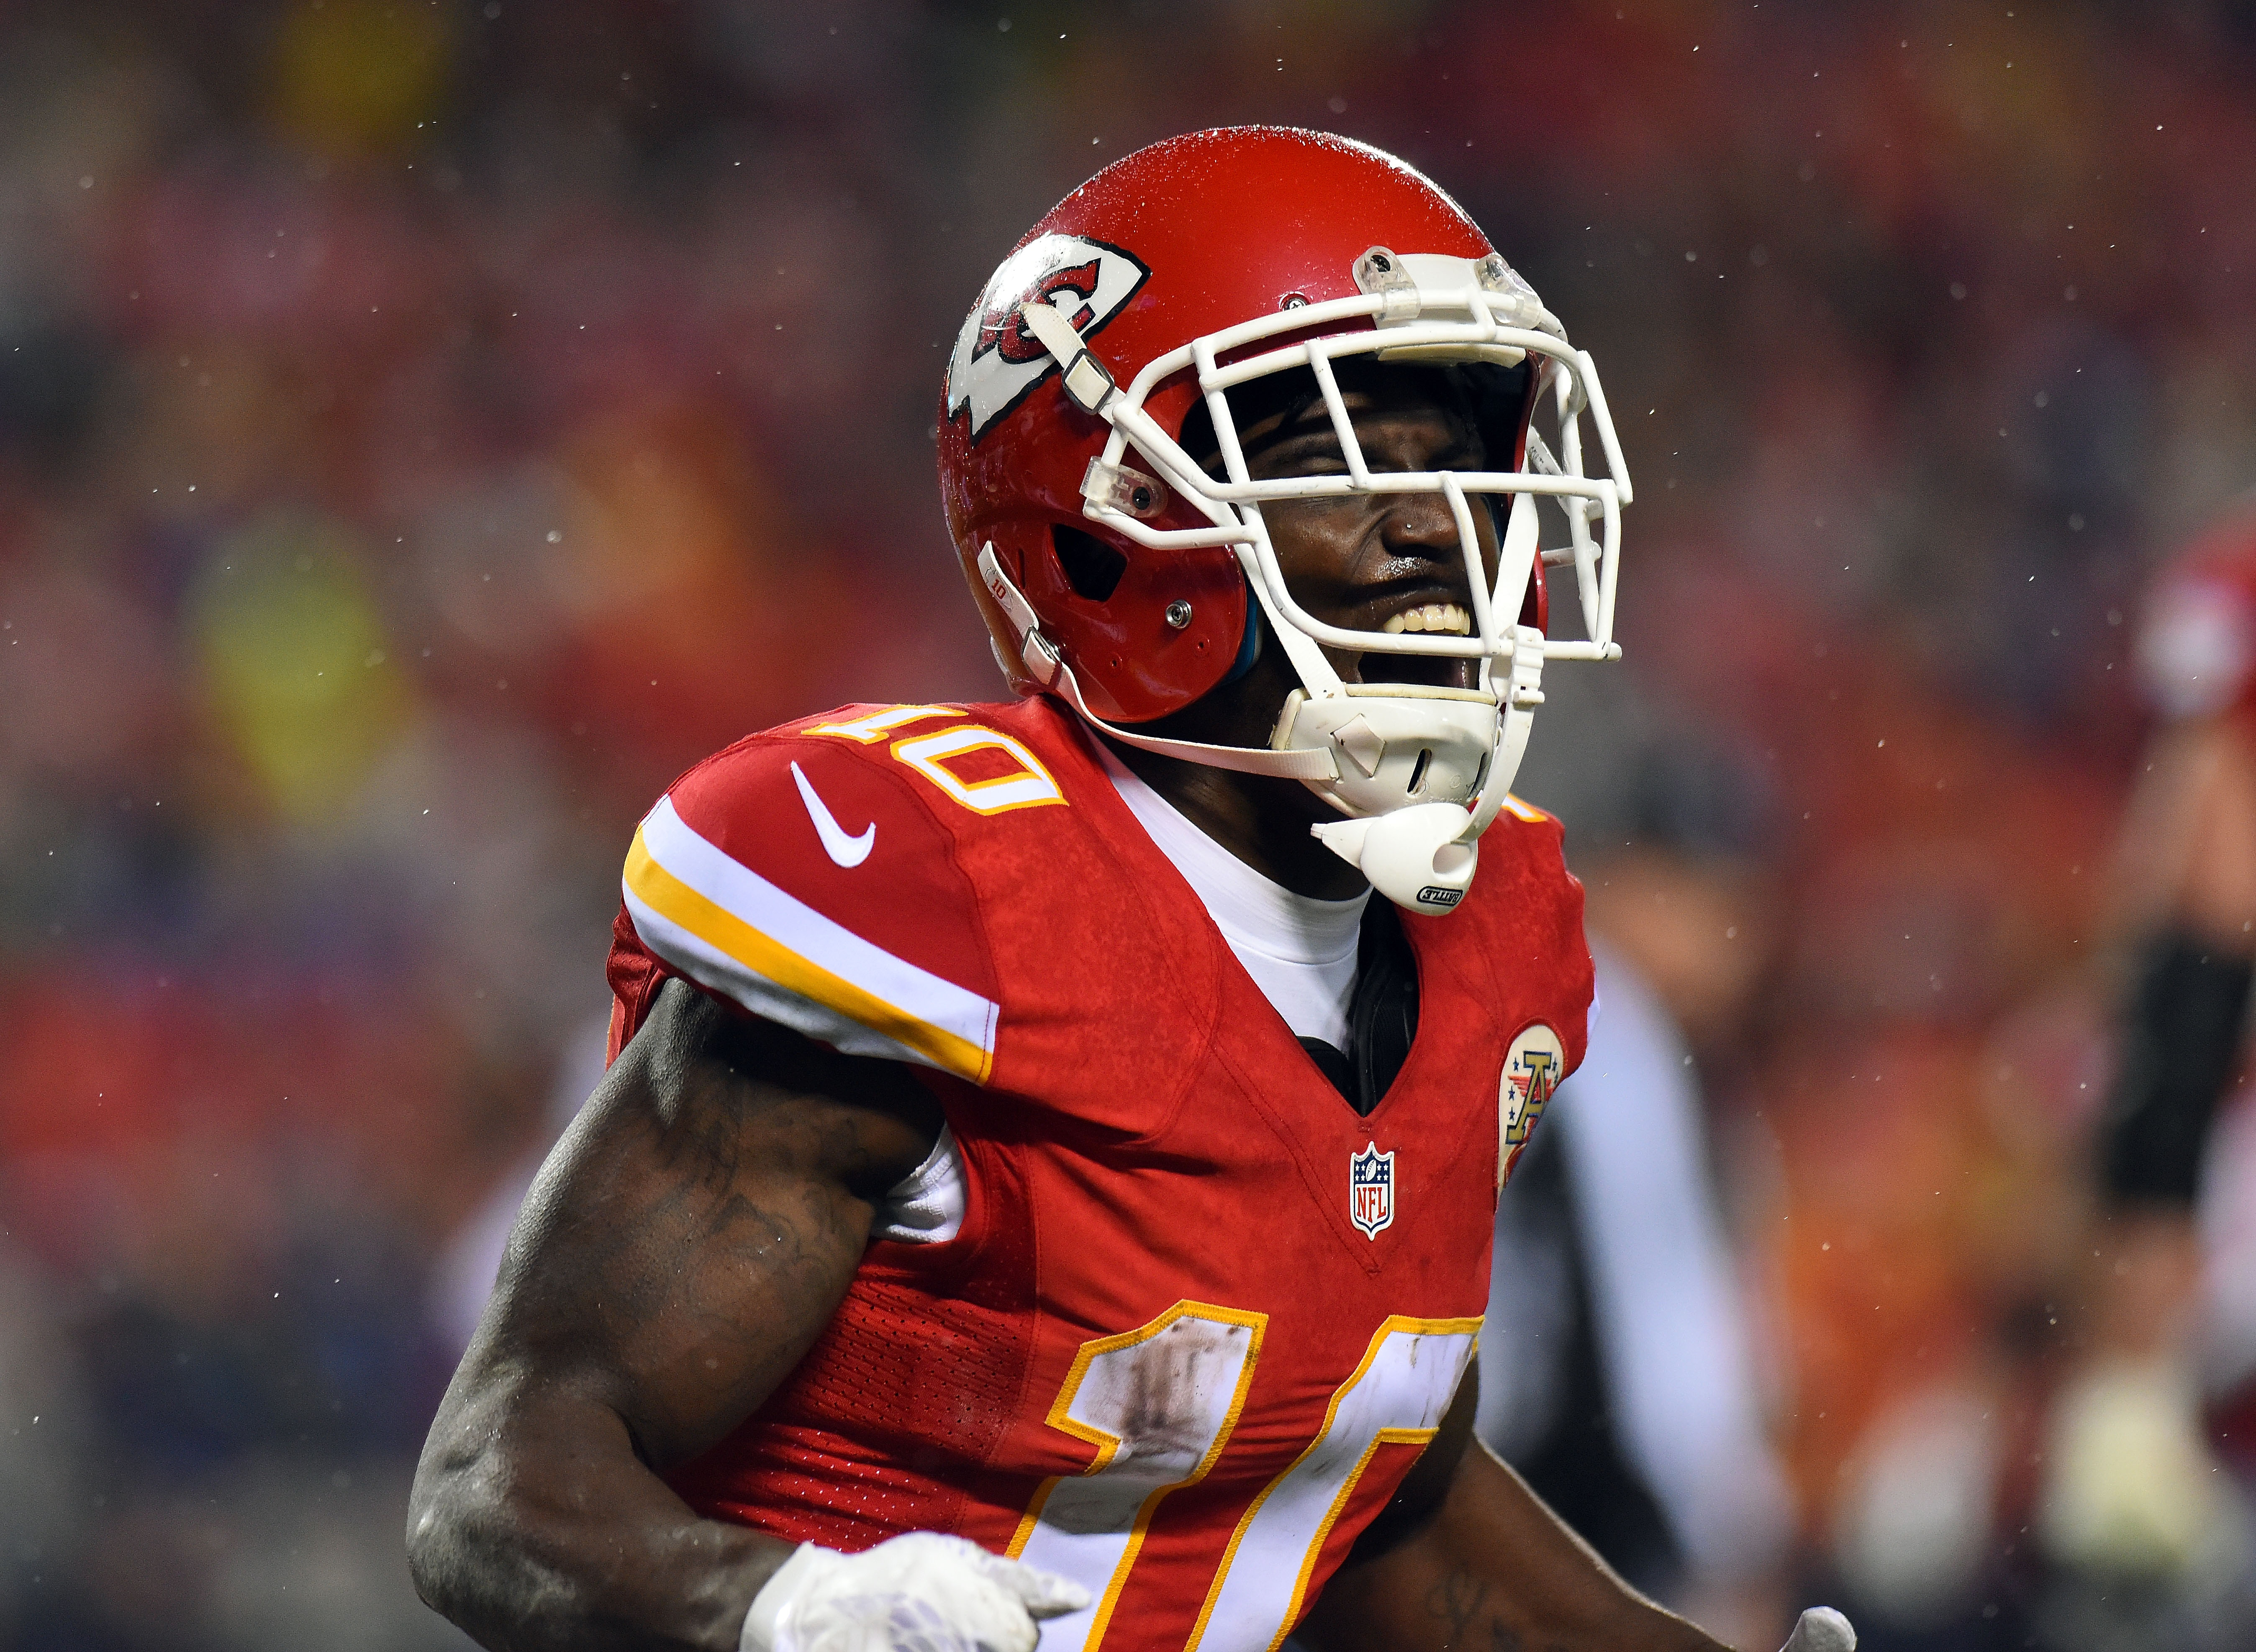 Chiefs were already considering trading Tyreek Hill before his incident